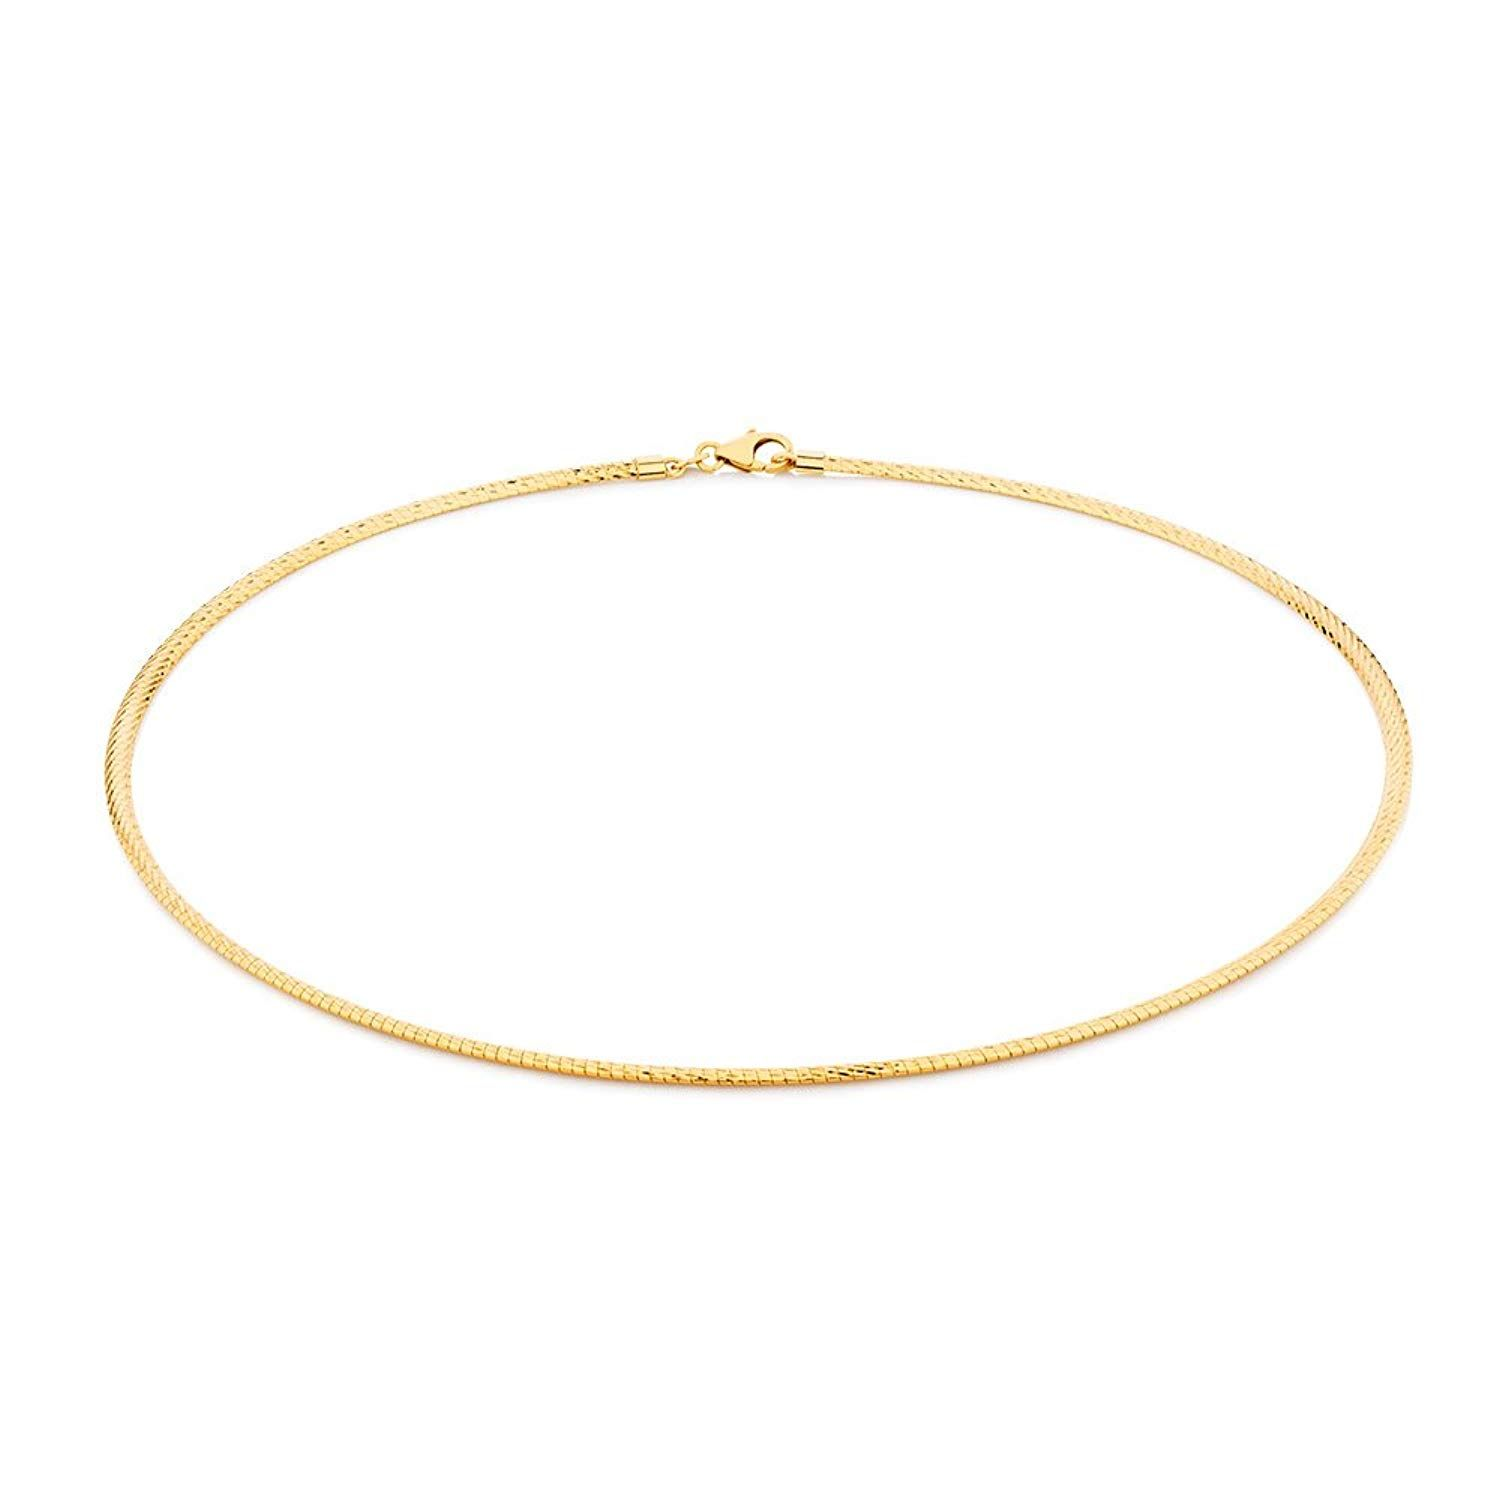 2mm 14k GOLD PLATED STERLING SILVER 925 ITALIAN SNAKE CHAIN NECKLACE JEWELLERY